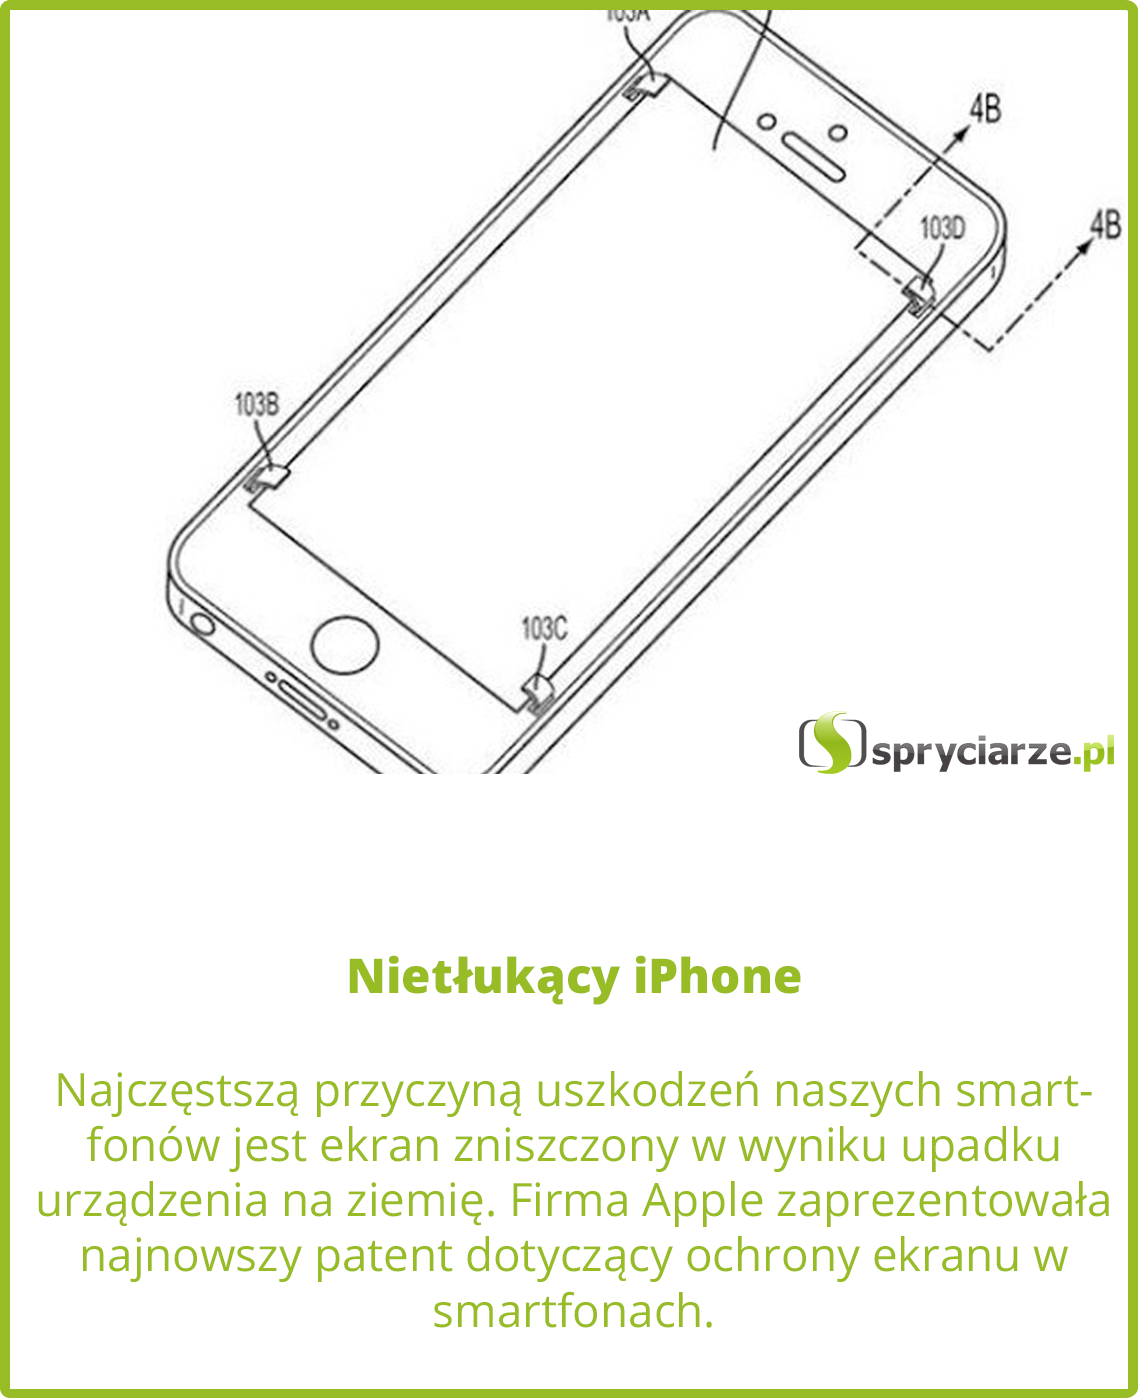 Nietłukący iPhone